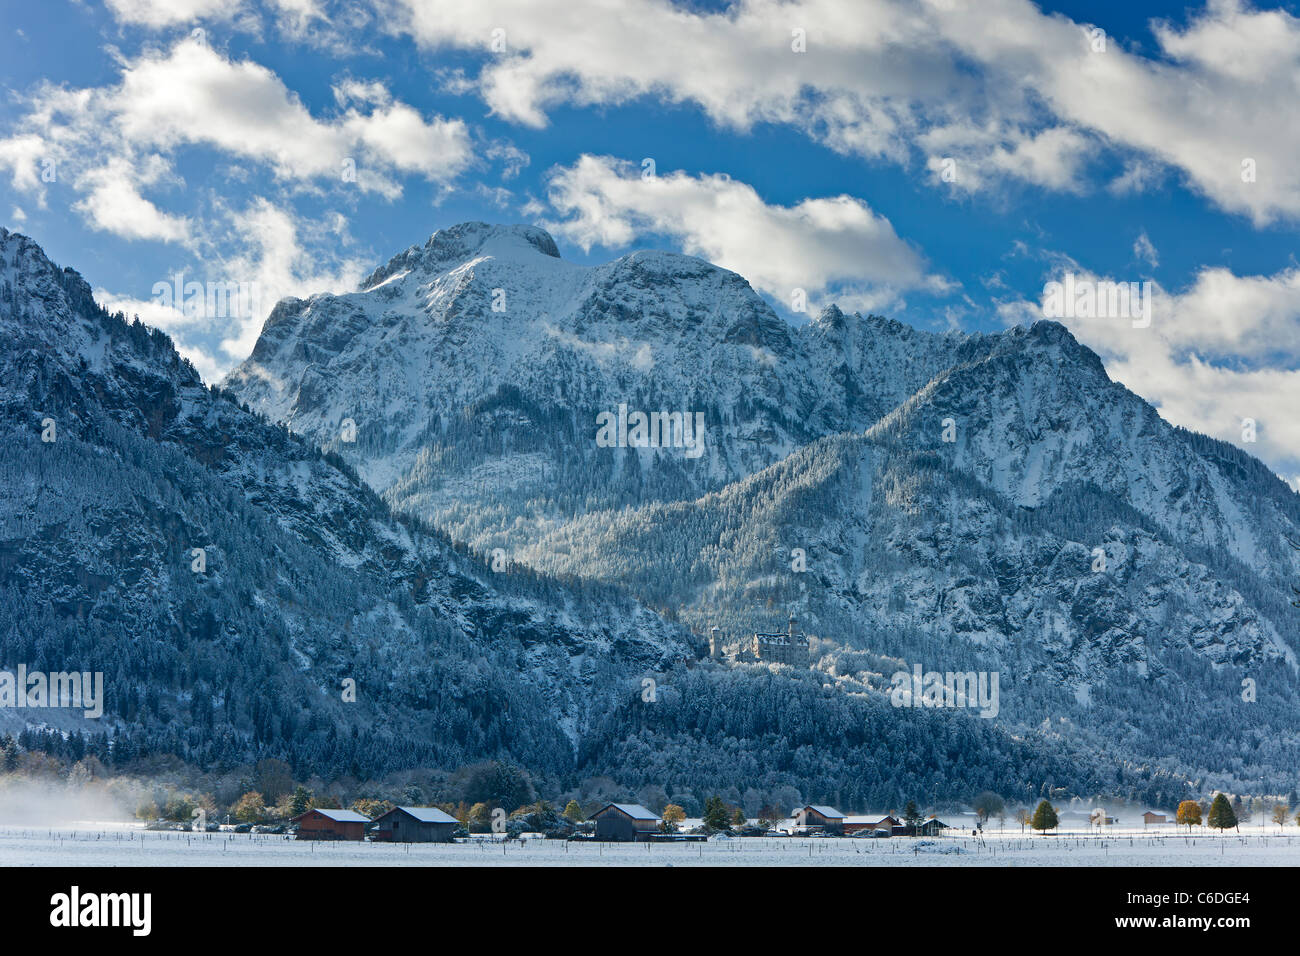 Germany, Bavaria, Oberbayern, Snowy mountains surrounding Neuschwanstein Castle - Stock Image